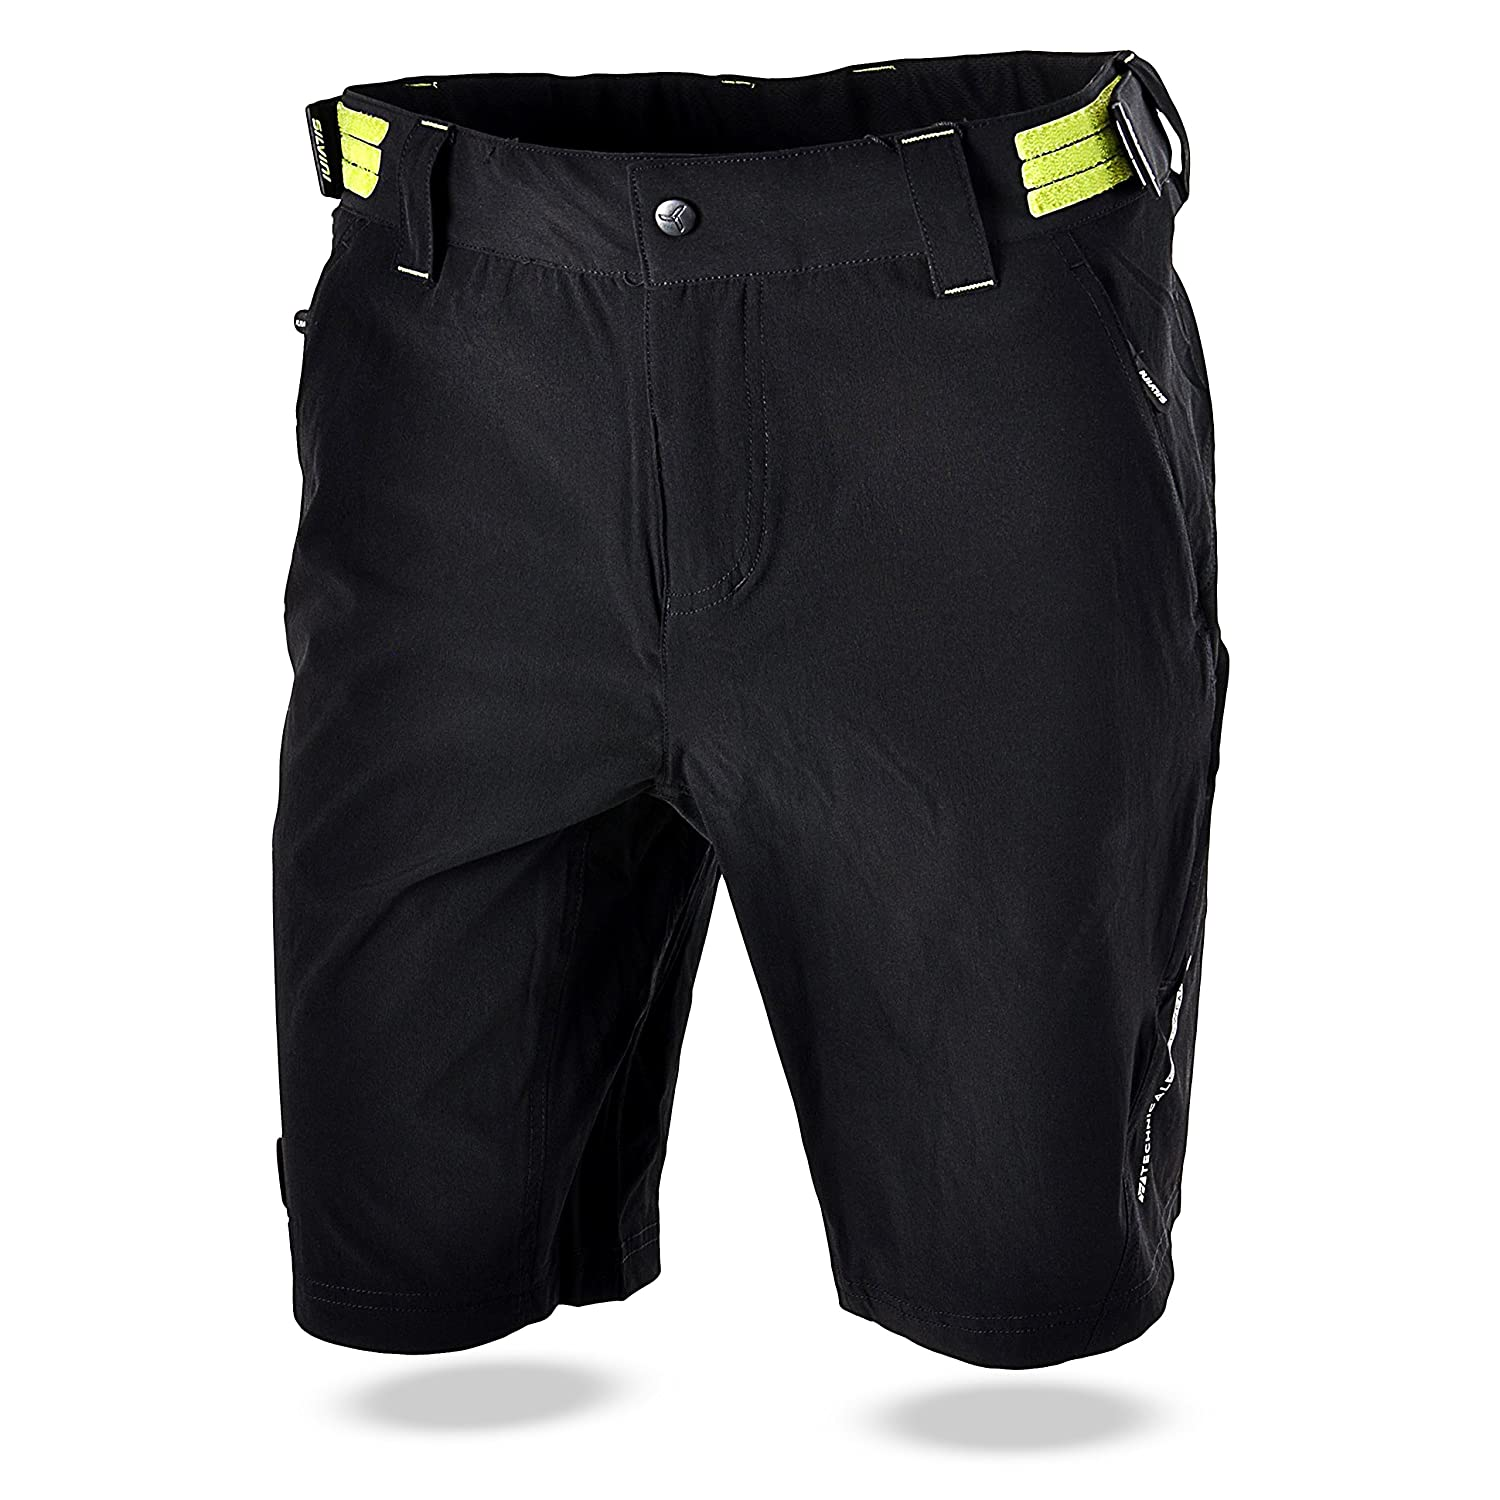 23dcee2c18 ENJOY YOUR MOUNTAIN BIKE RIDES LIKE NEVER BEFORE with the SILVINI ultimate  mountain bike shorts for men, which are designed to endure any abuse and  keep you ...